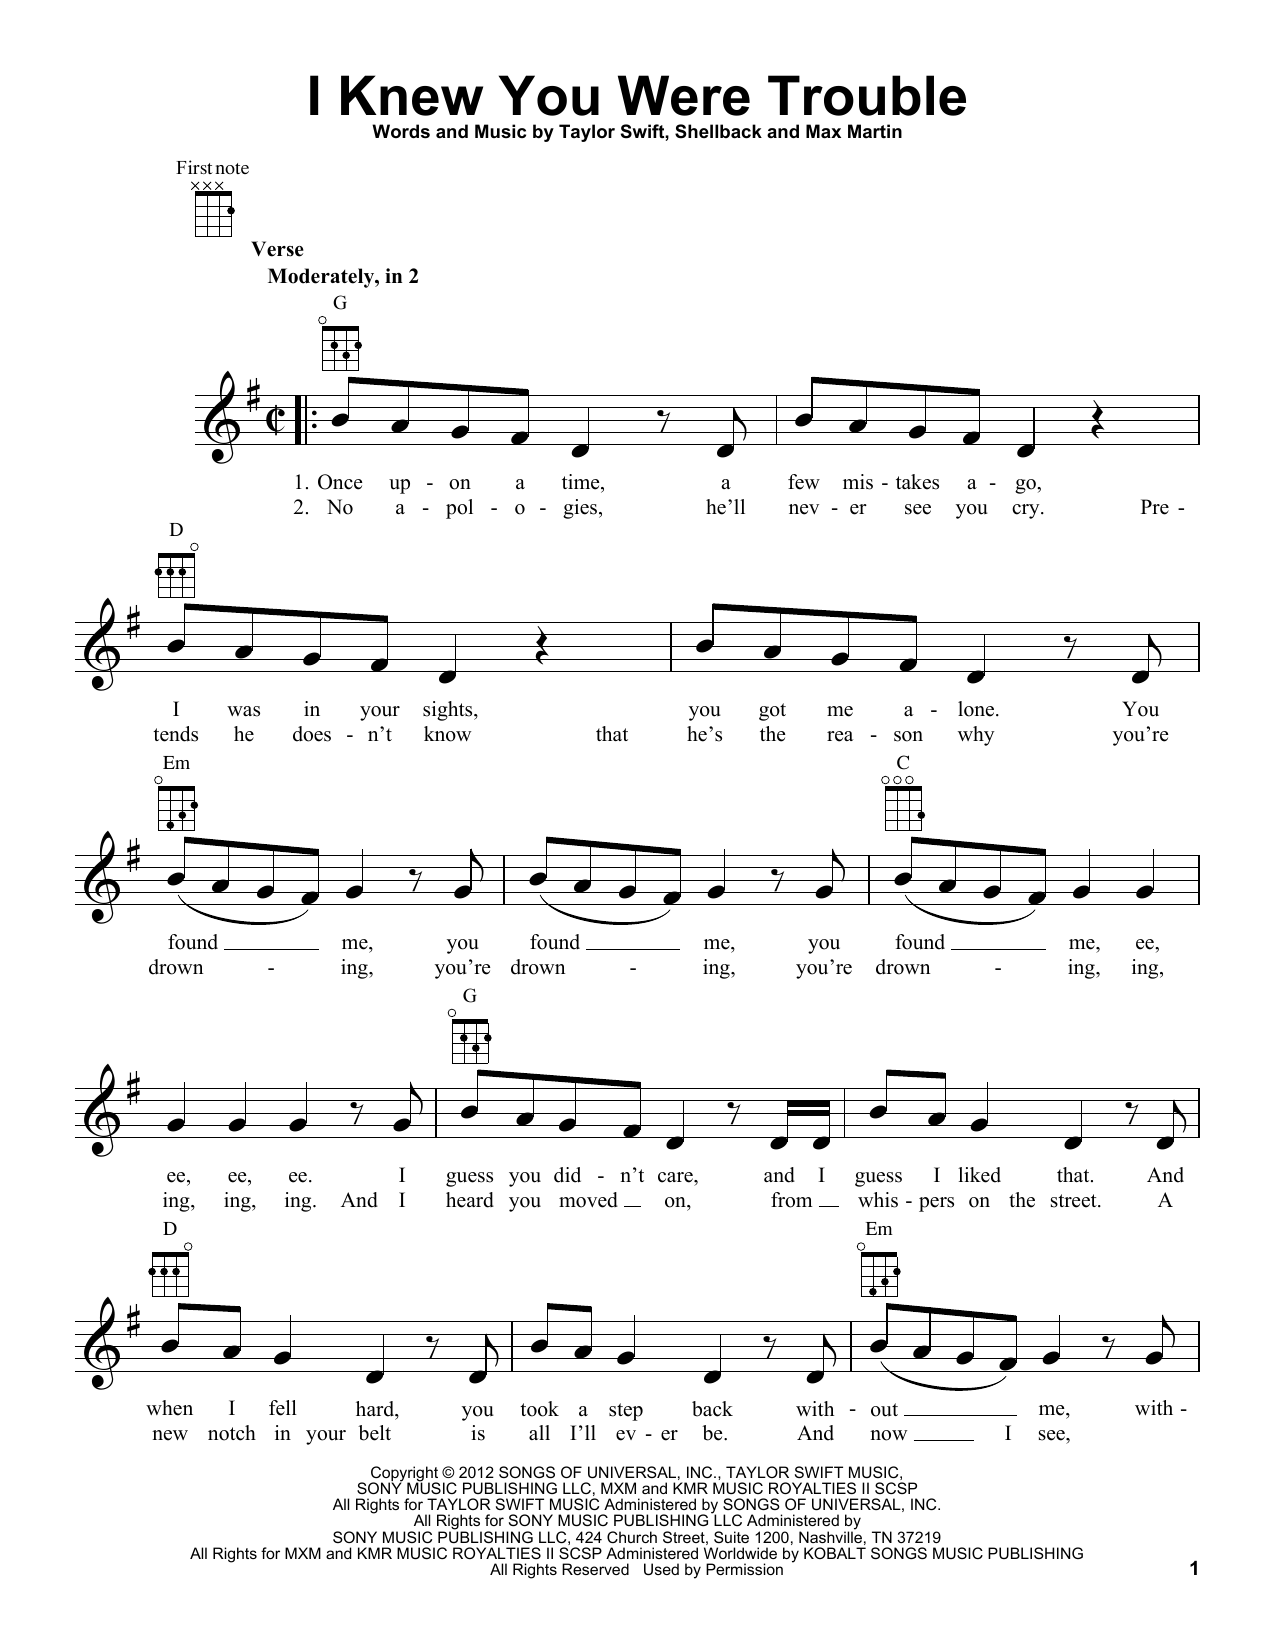 Ukulele ukulele tabs taylor swift : Ukulele : ukulele tabs wildest dreams Ukulele Tabs Wildest Dreams ...